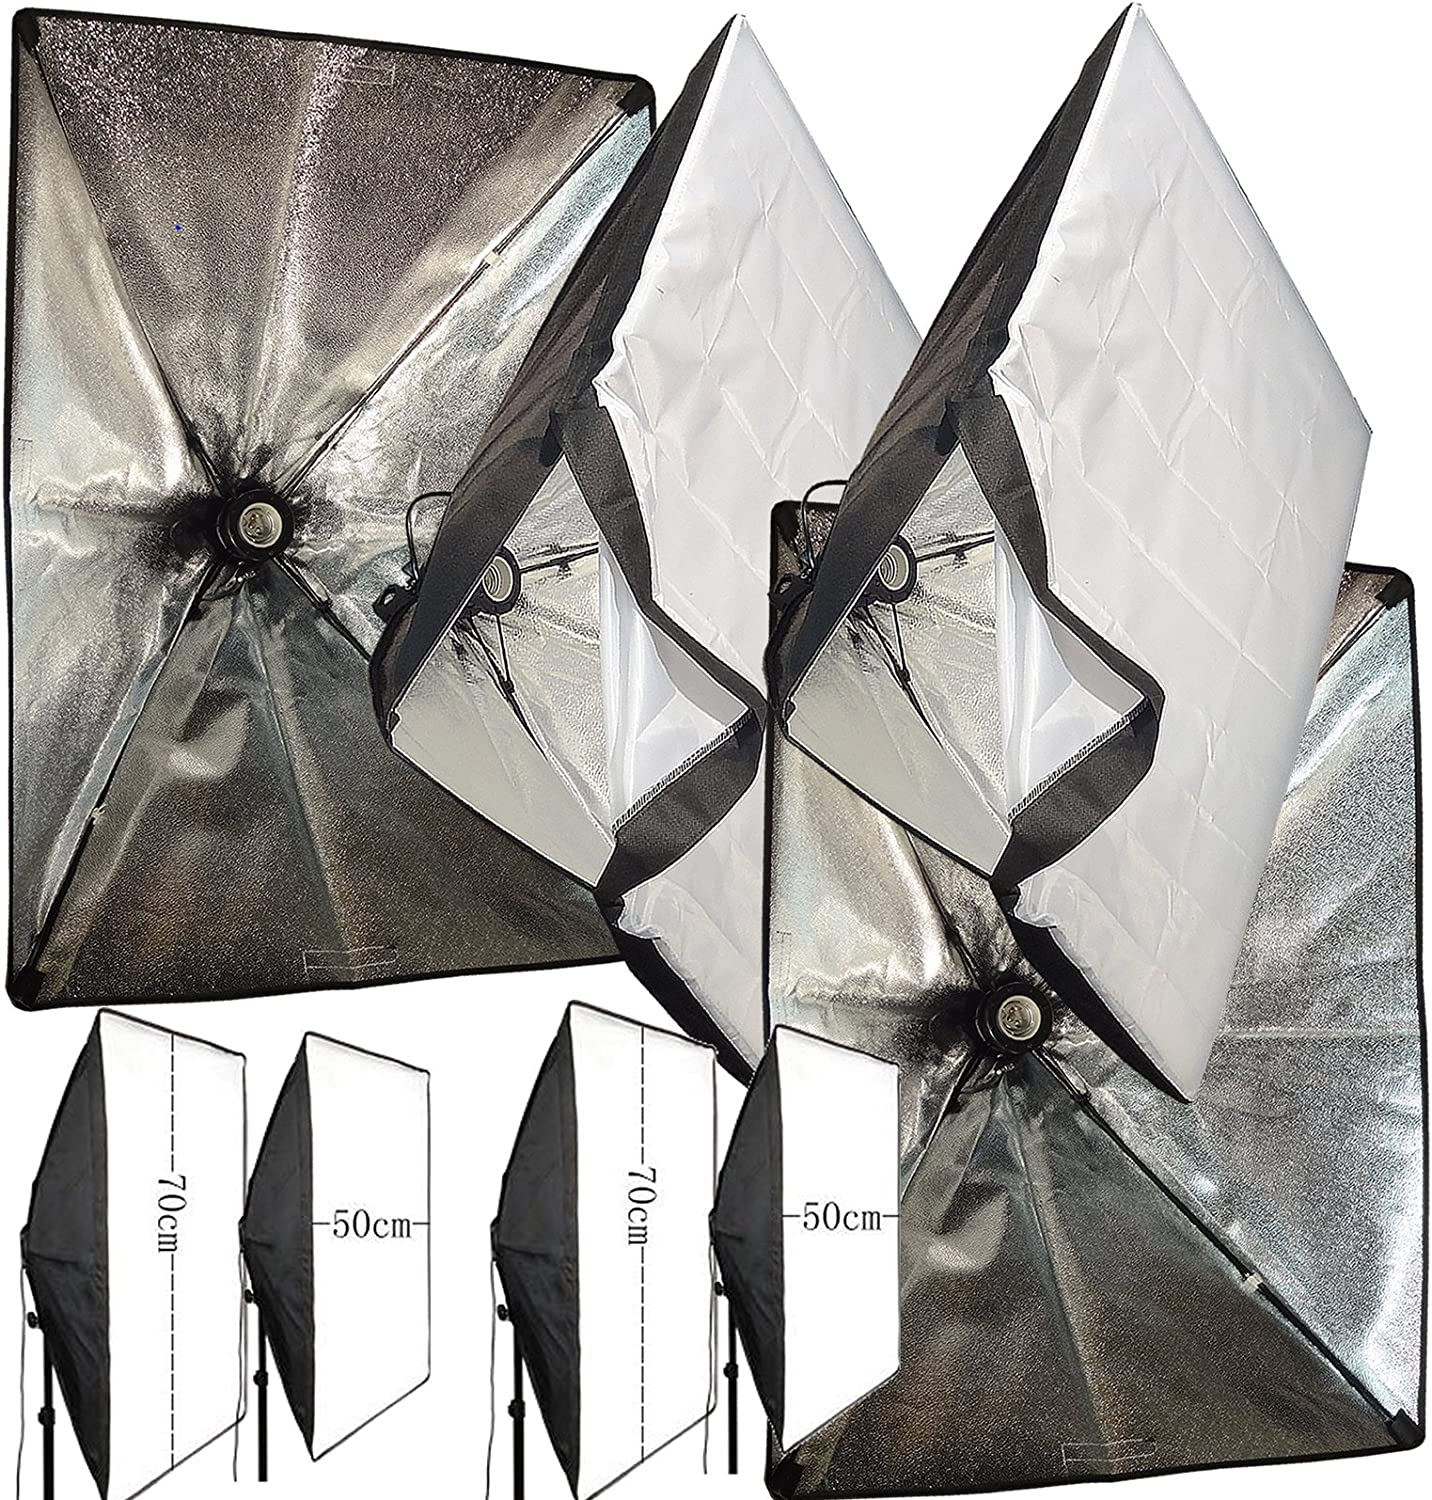 White 2 pack BlueDot Trading 50cm-softbox-1-bulb-2pk Photo Lighting Softbox 20 x 20 Inches with 1 Lamp Holder